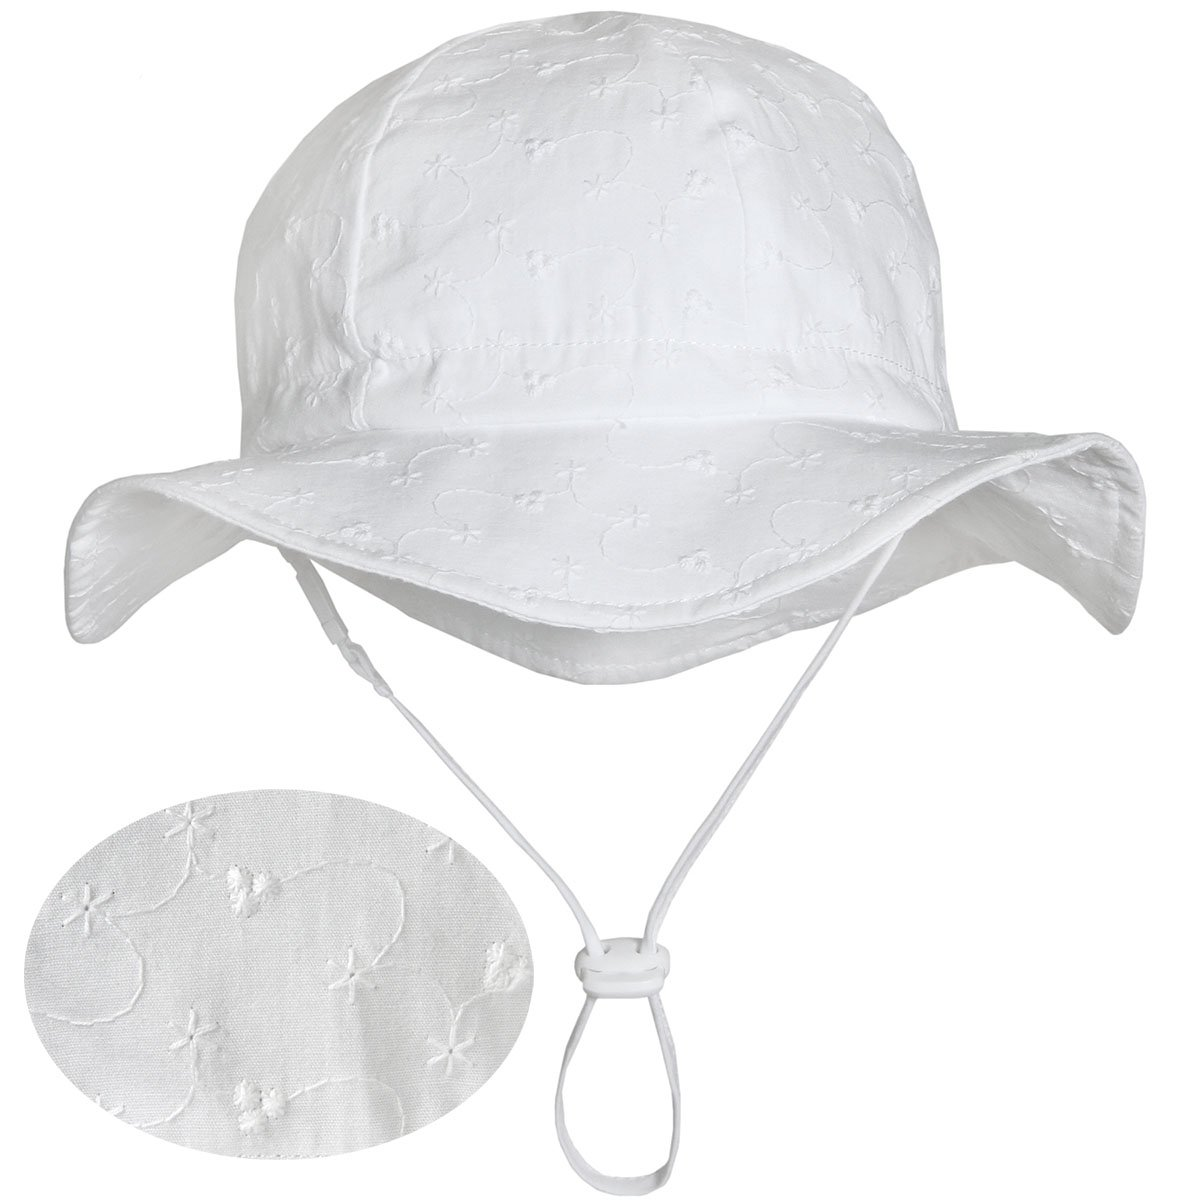 Kids White Summer Sunhat 50 UPF, Adjustable Foldable, Stay-on Chin Strap (L: 2-12Y, Floppy Hat: Tiny Floret)